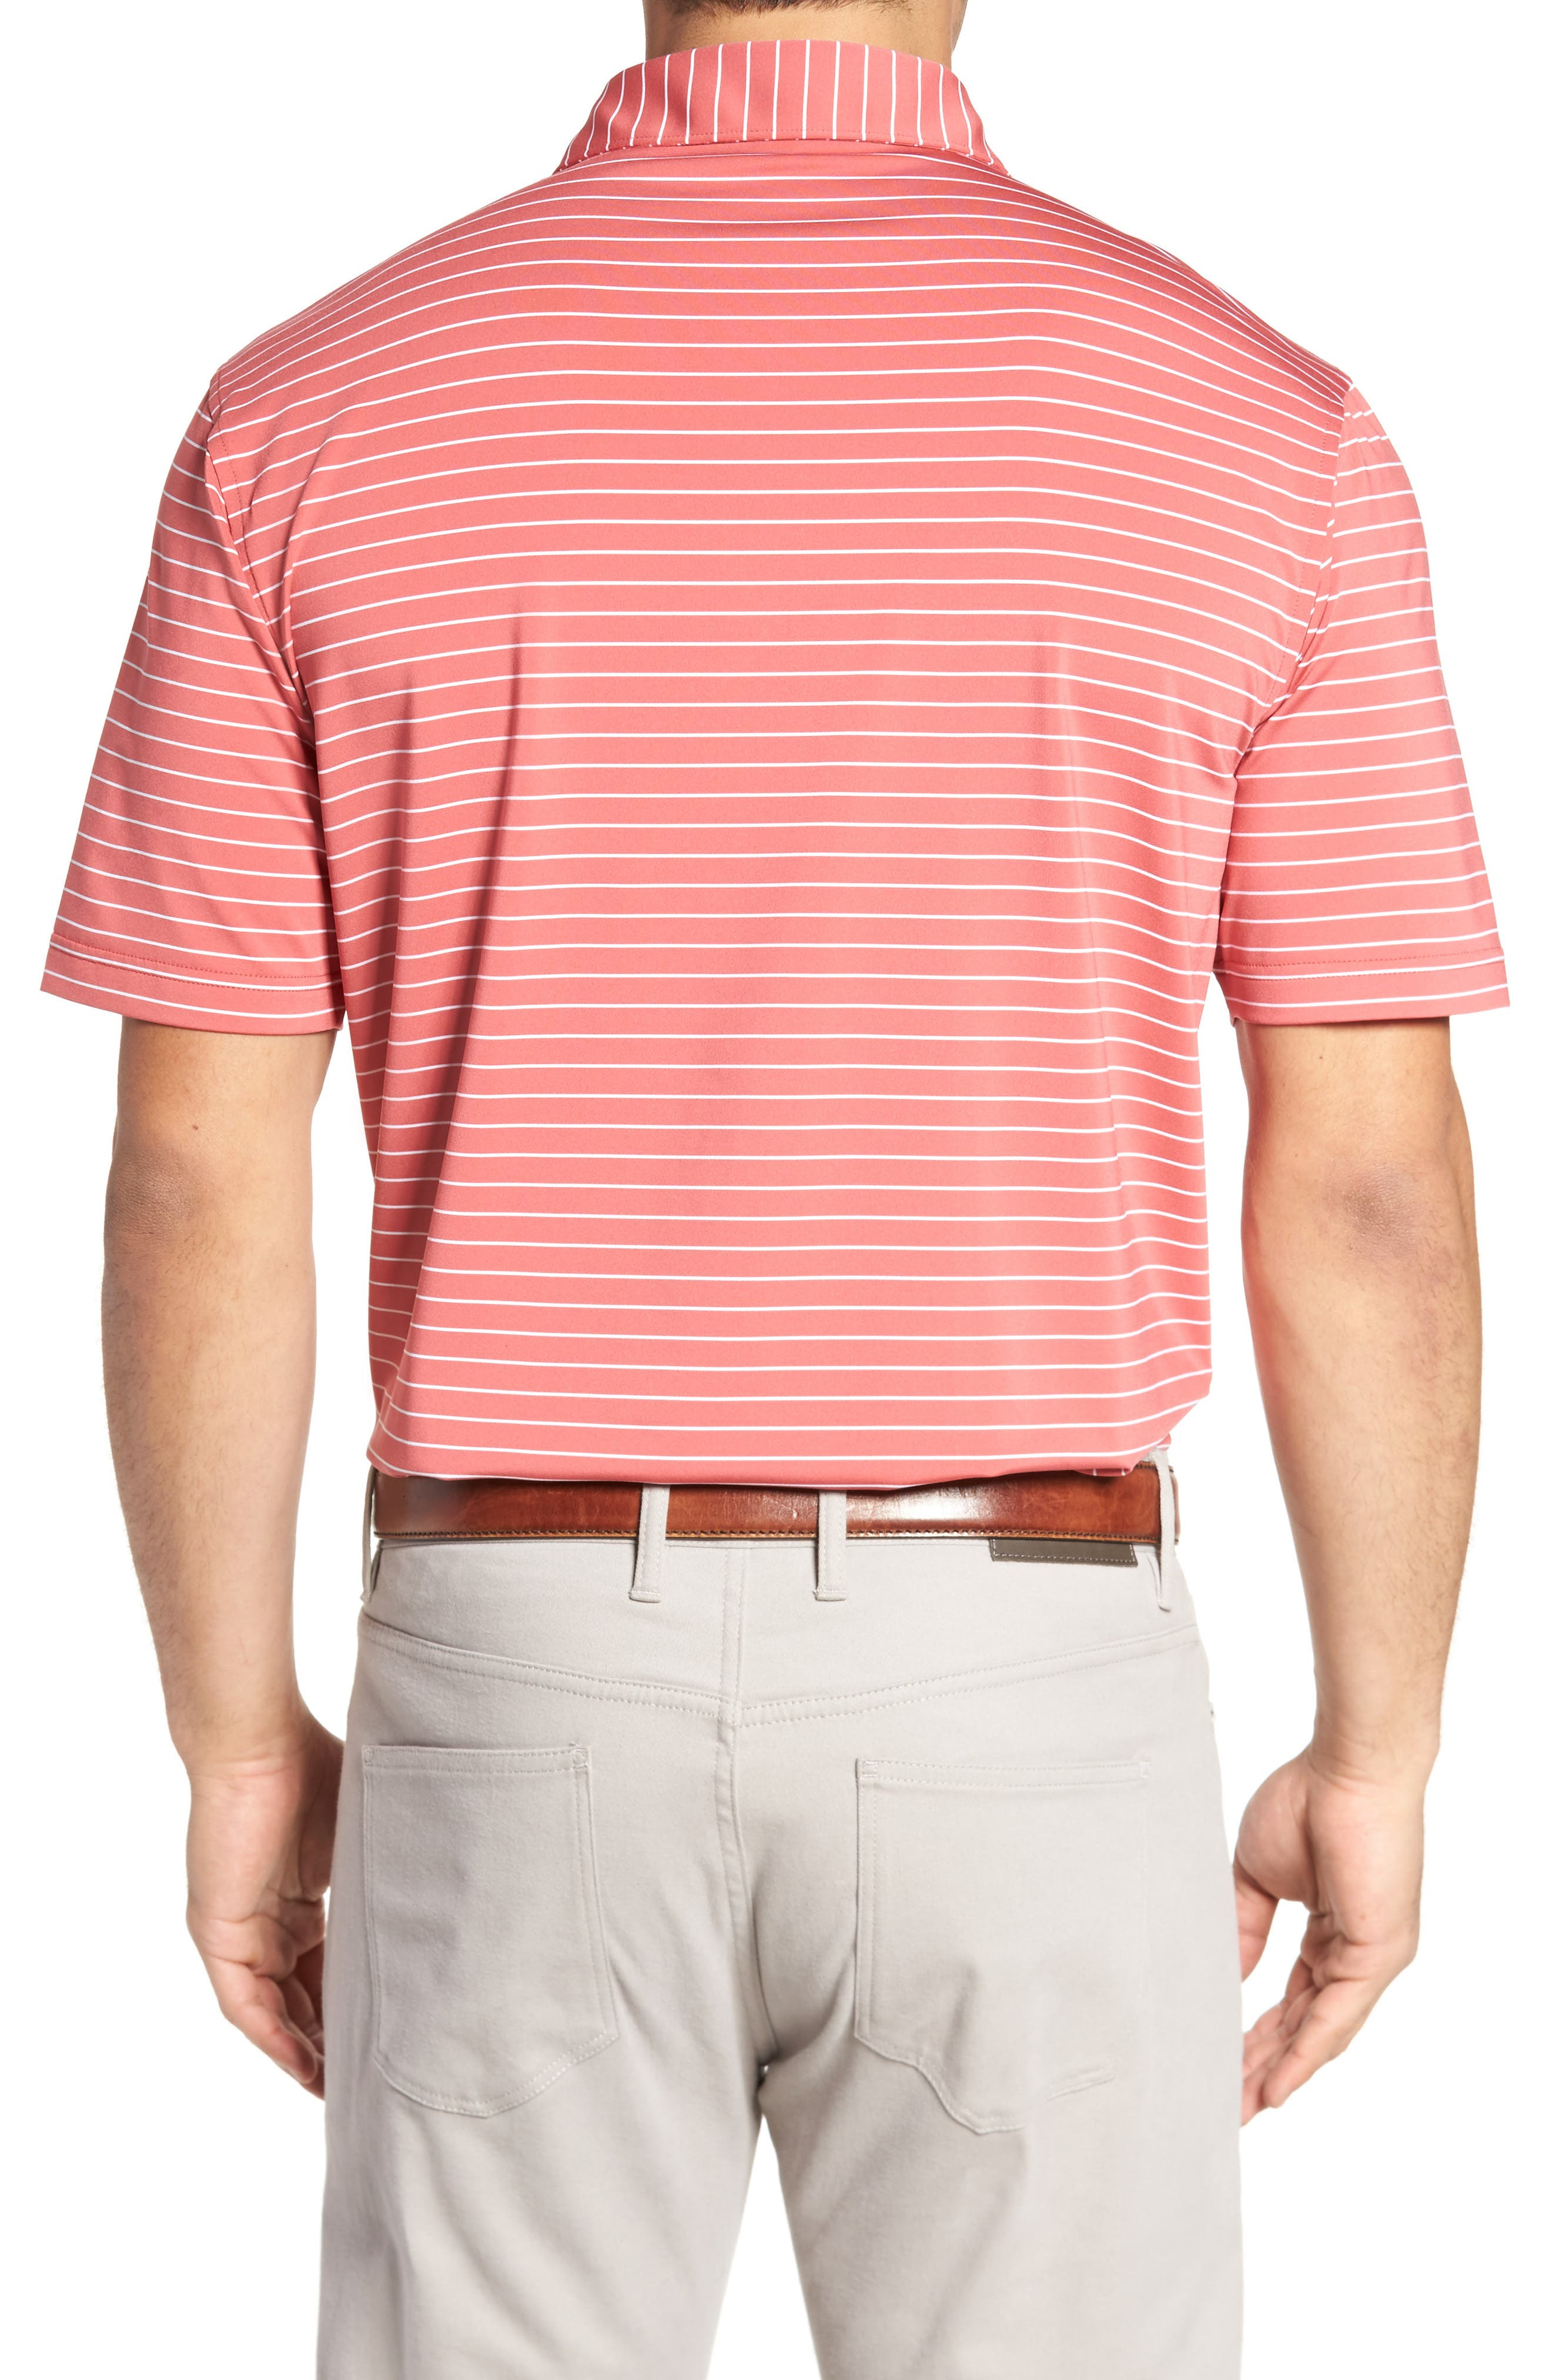 Halifax Pinstripe Stretch Jersey Polo,                             Alternate thumbnail 2, color,                             Cape Red